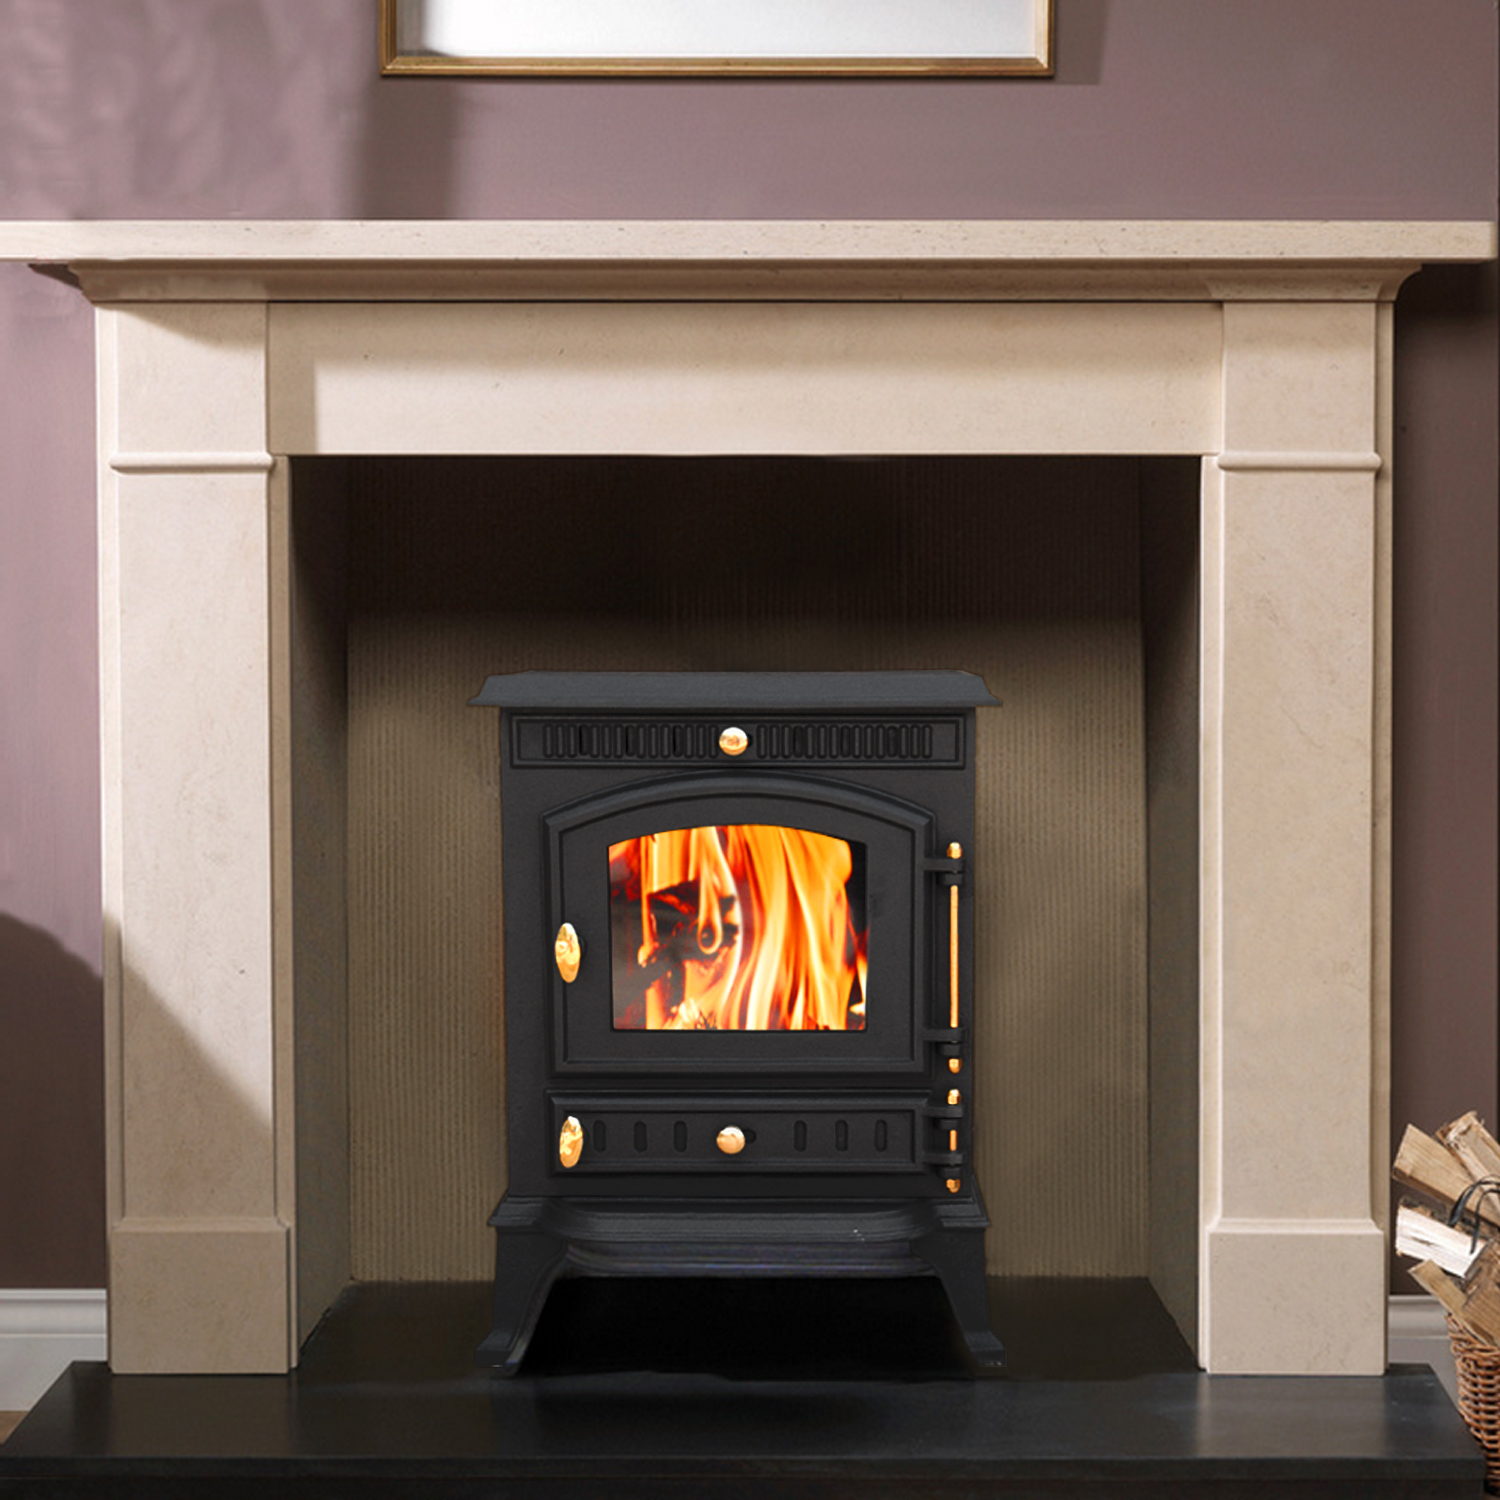 woodburner stove wood burning burner fire fireplace cast iron